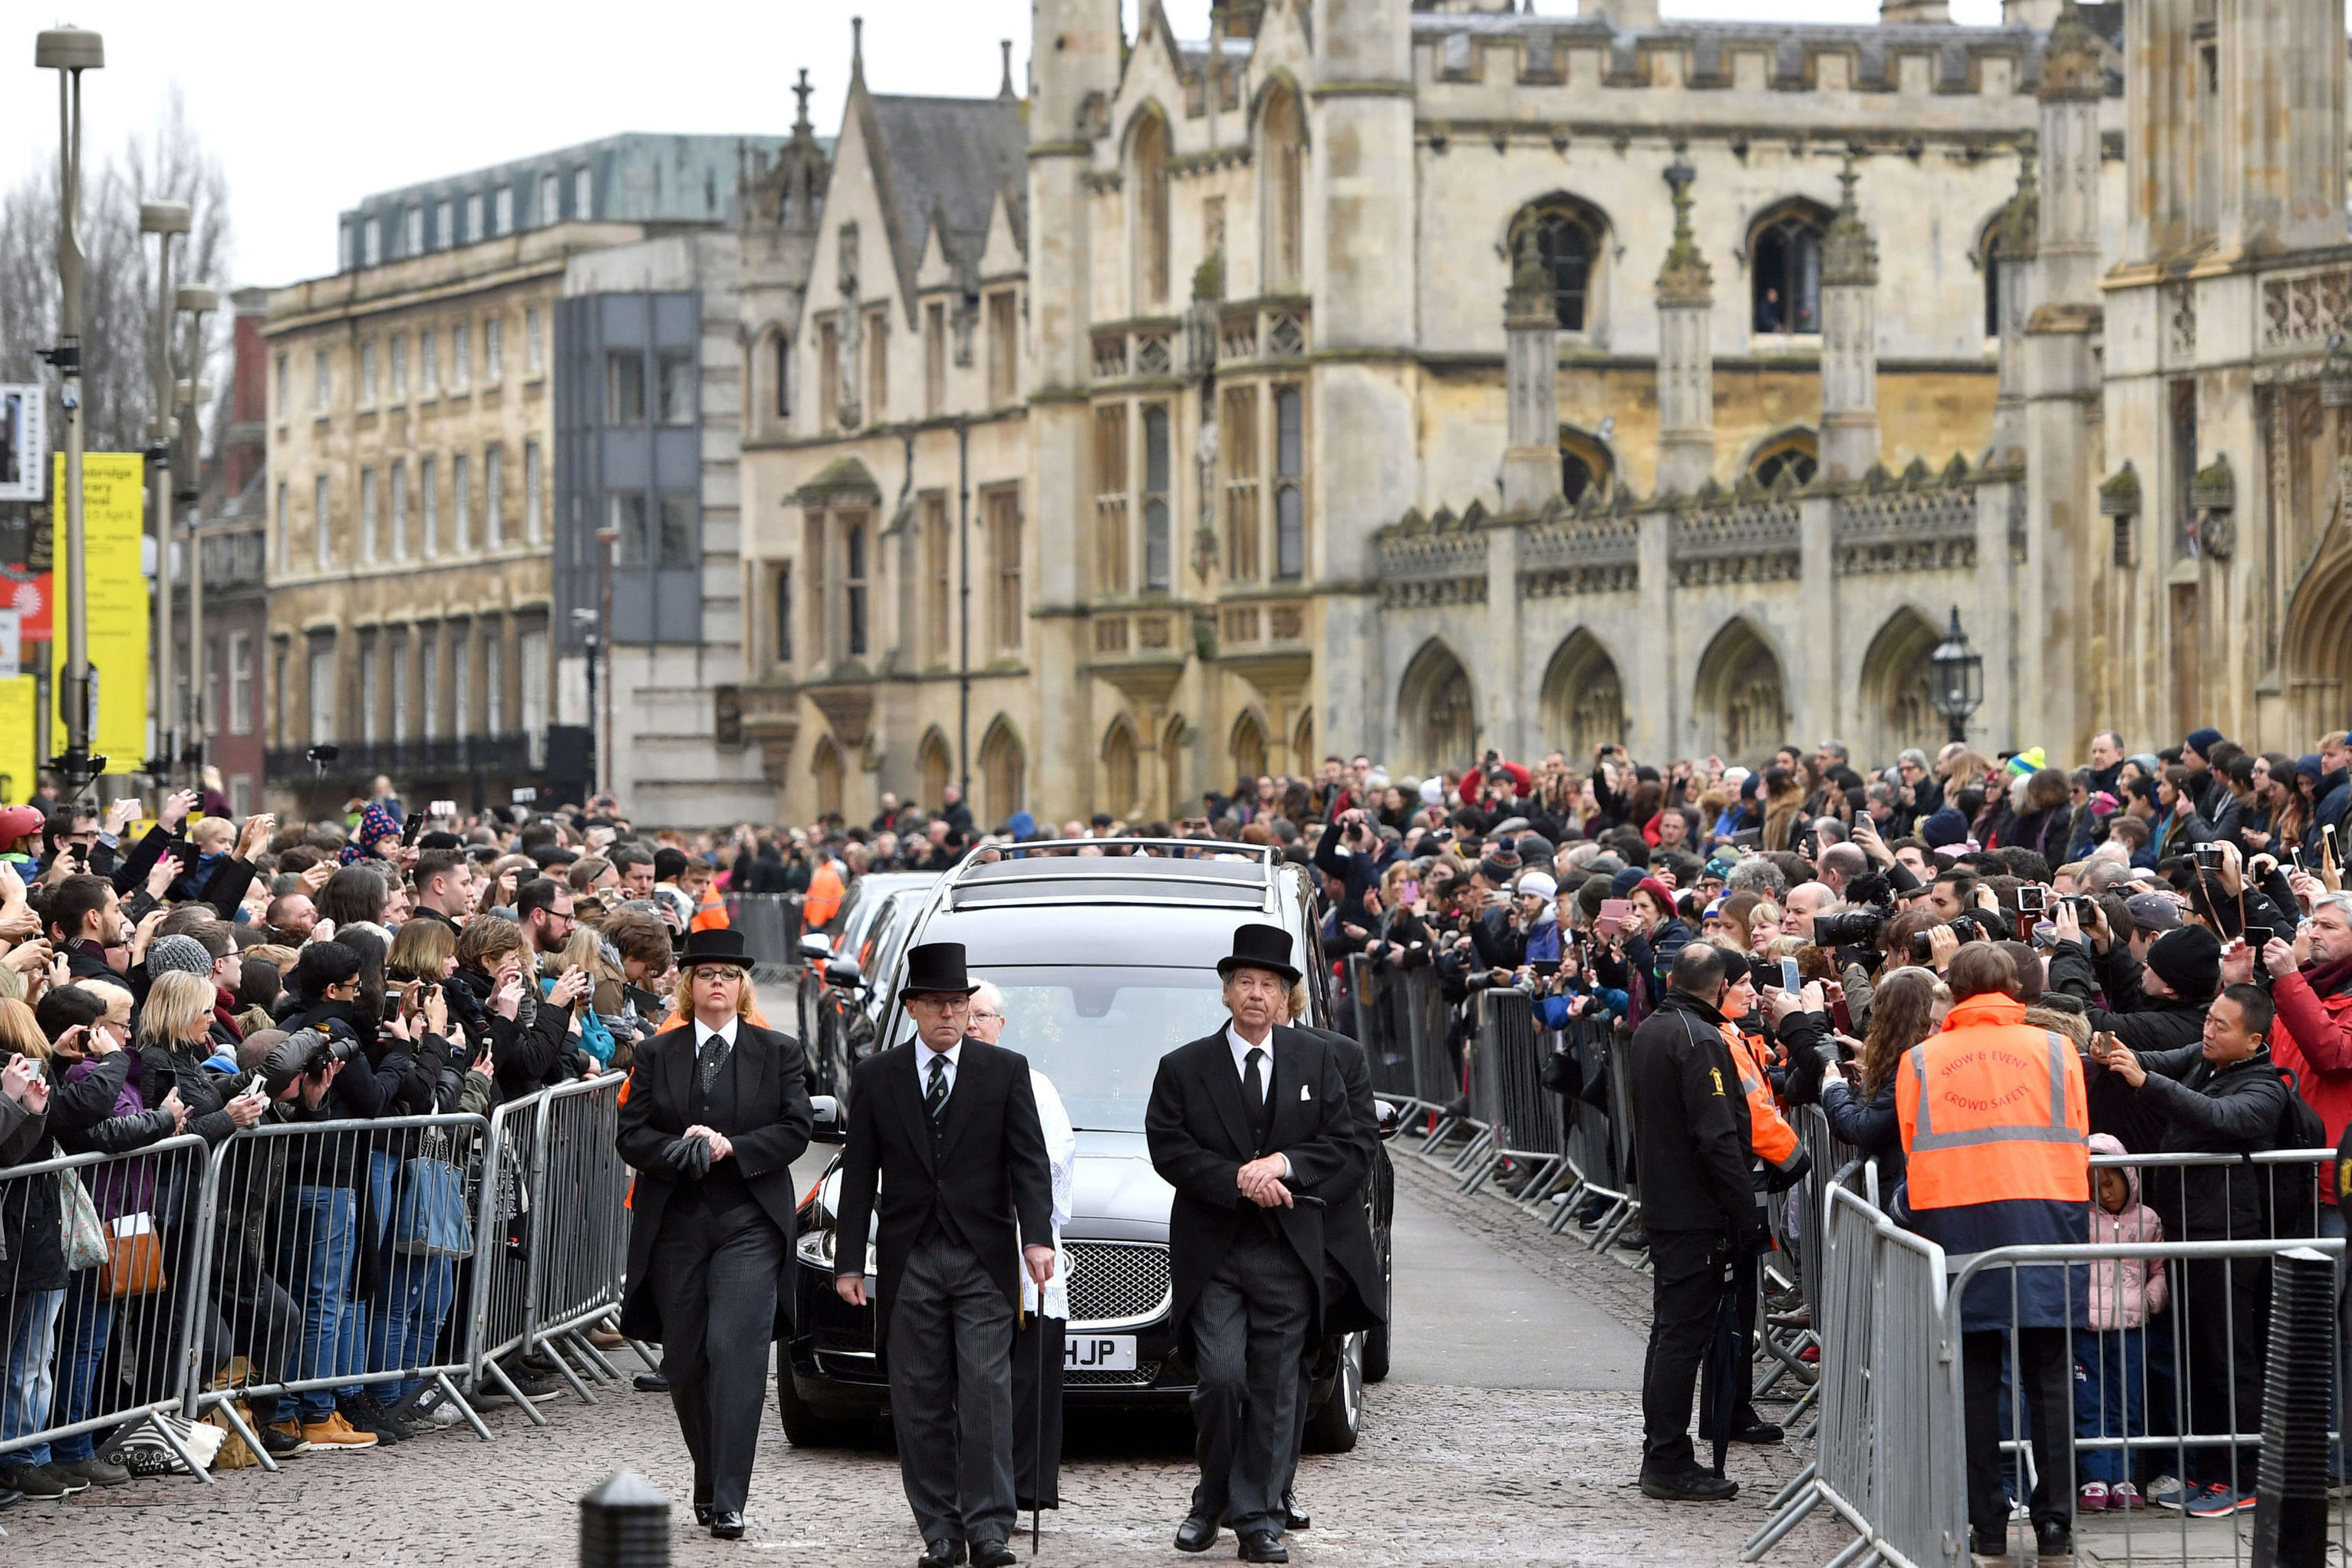 The hearse arrives at University Church of St Mary the Great in Cambridge, as mourners look on (Joe Giddens/PA Wire)